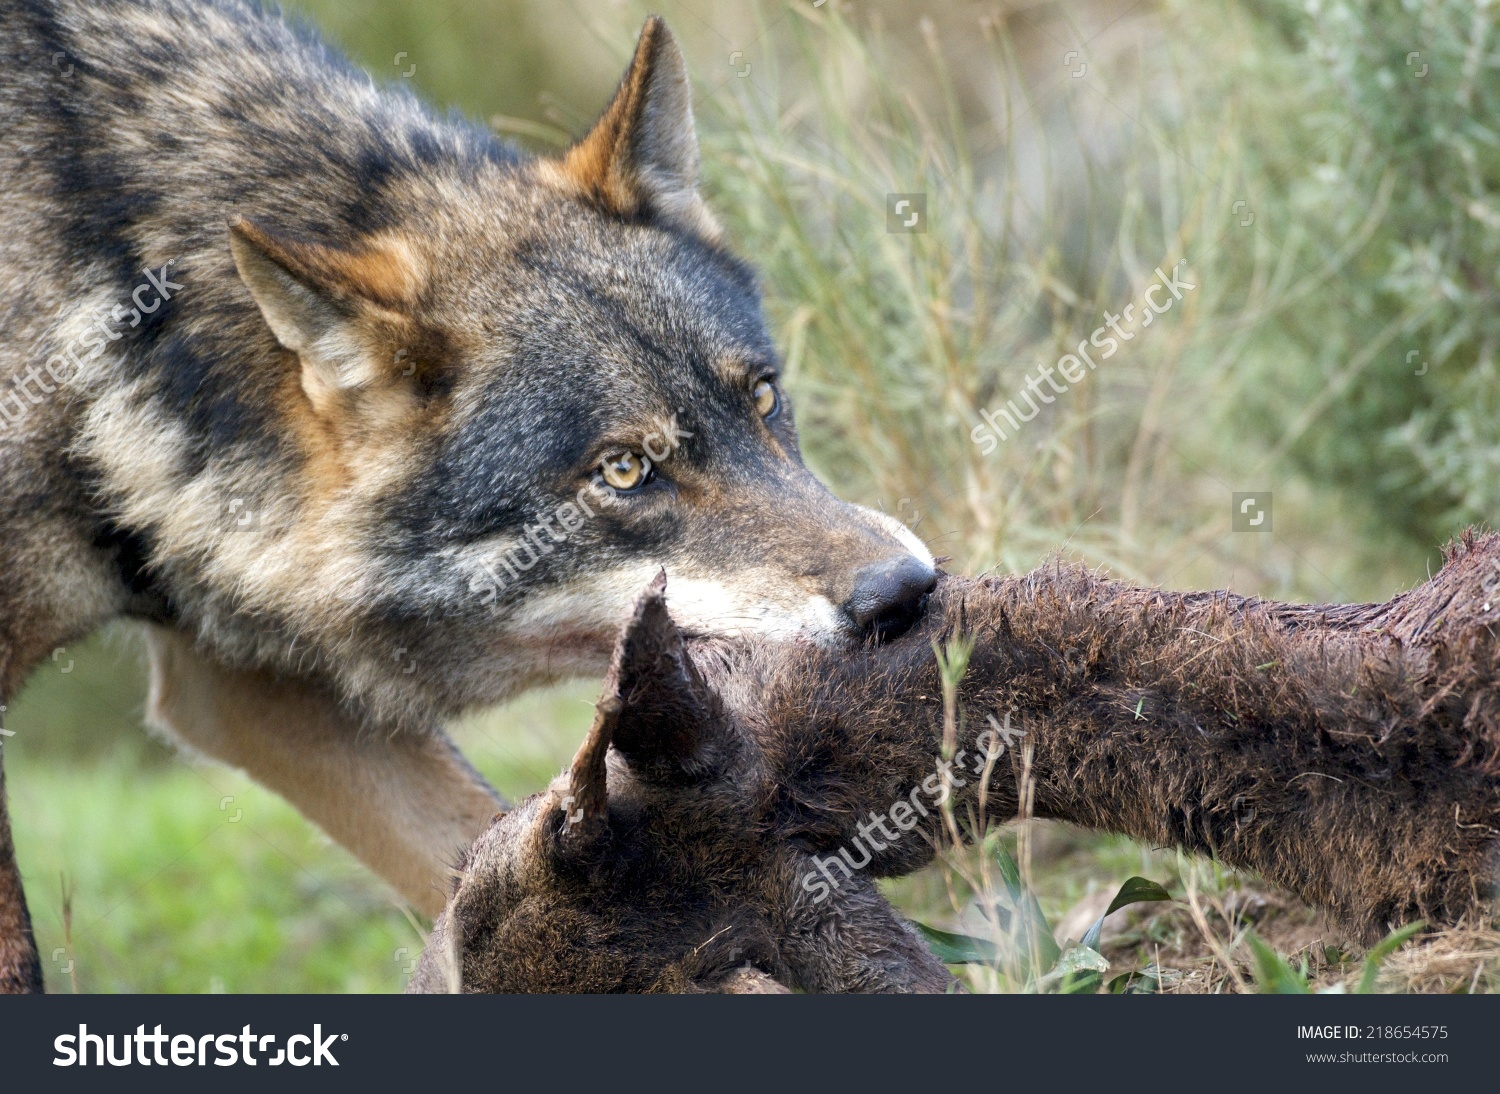 Alpha Male Iberian Wolf Canis Lupus Stock Photo 218654575.